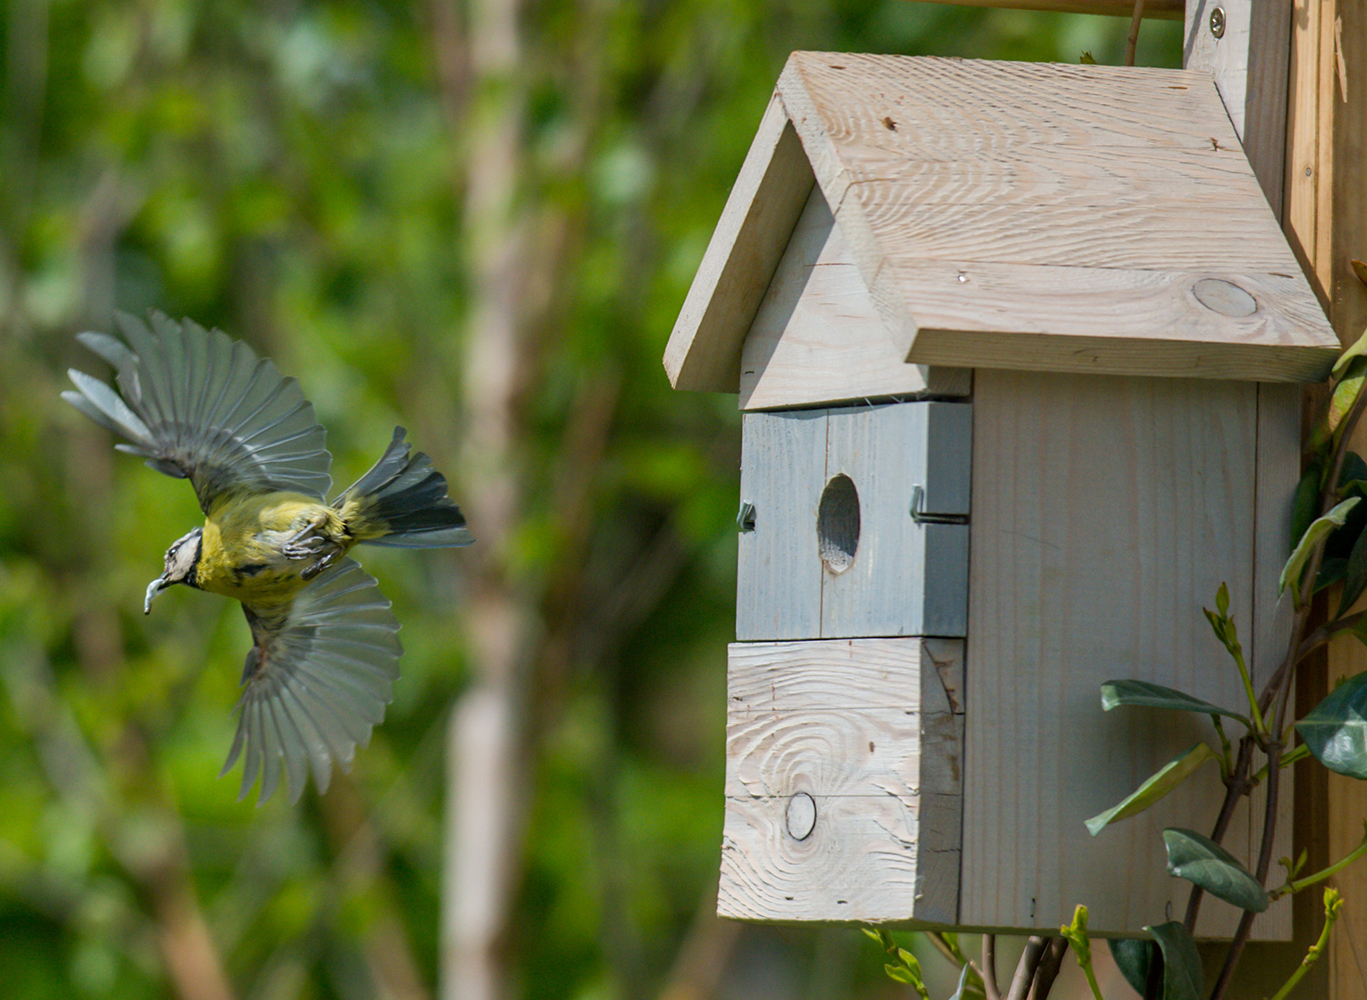 RSPB yellow tit flying